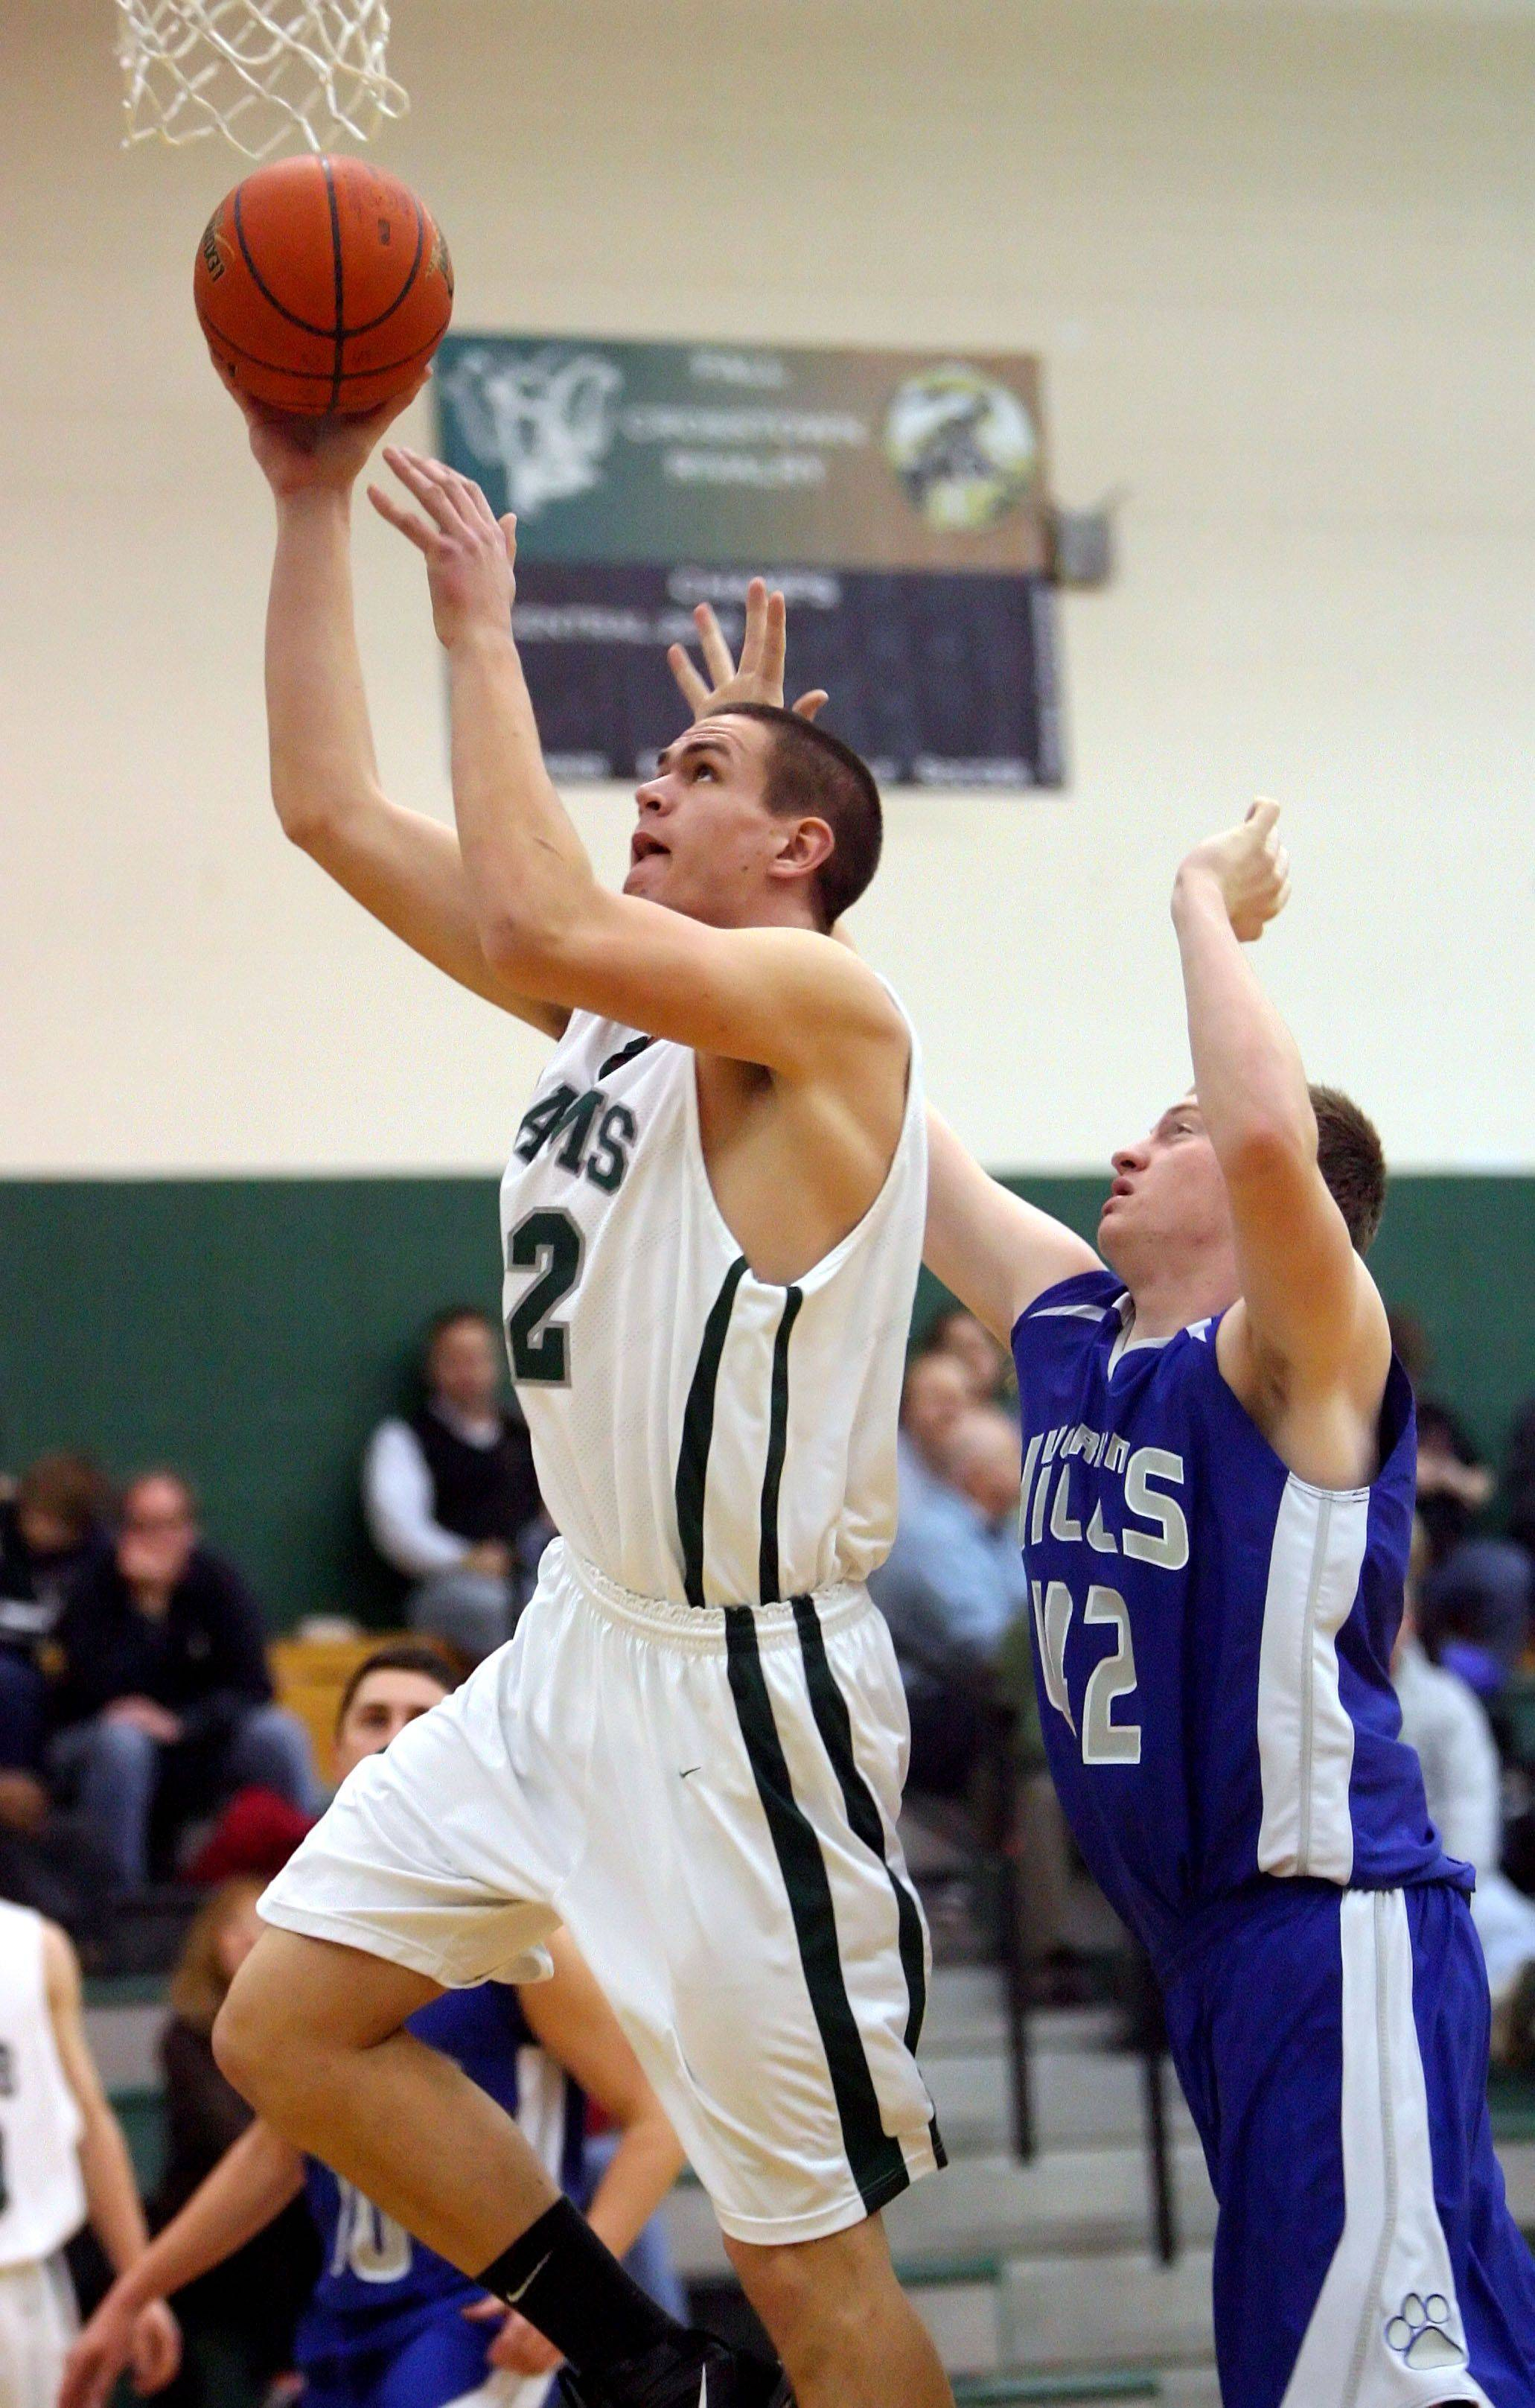 Grayslake Central's CJ Stempeck drives past Vernon Hills' John Foley.